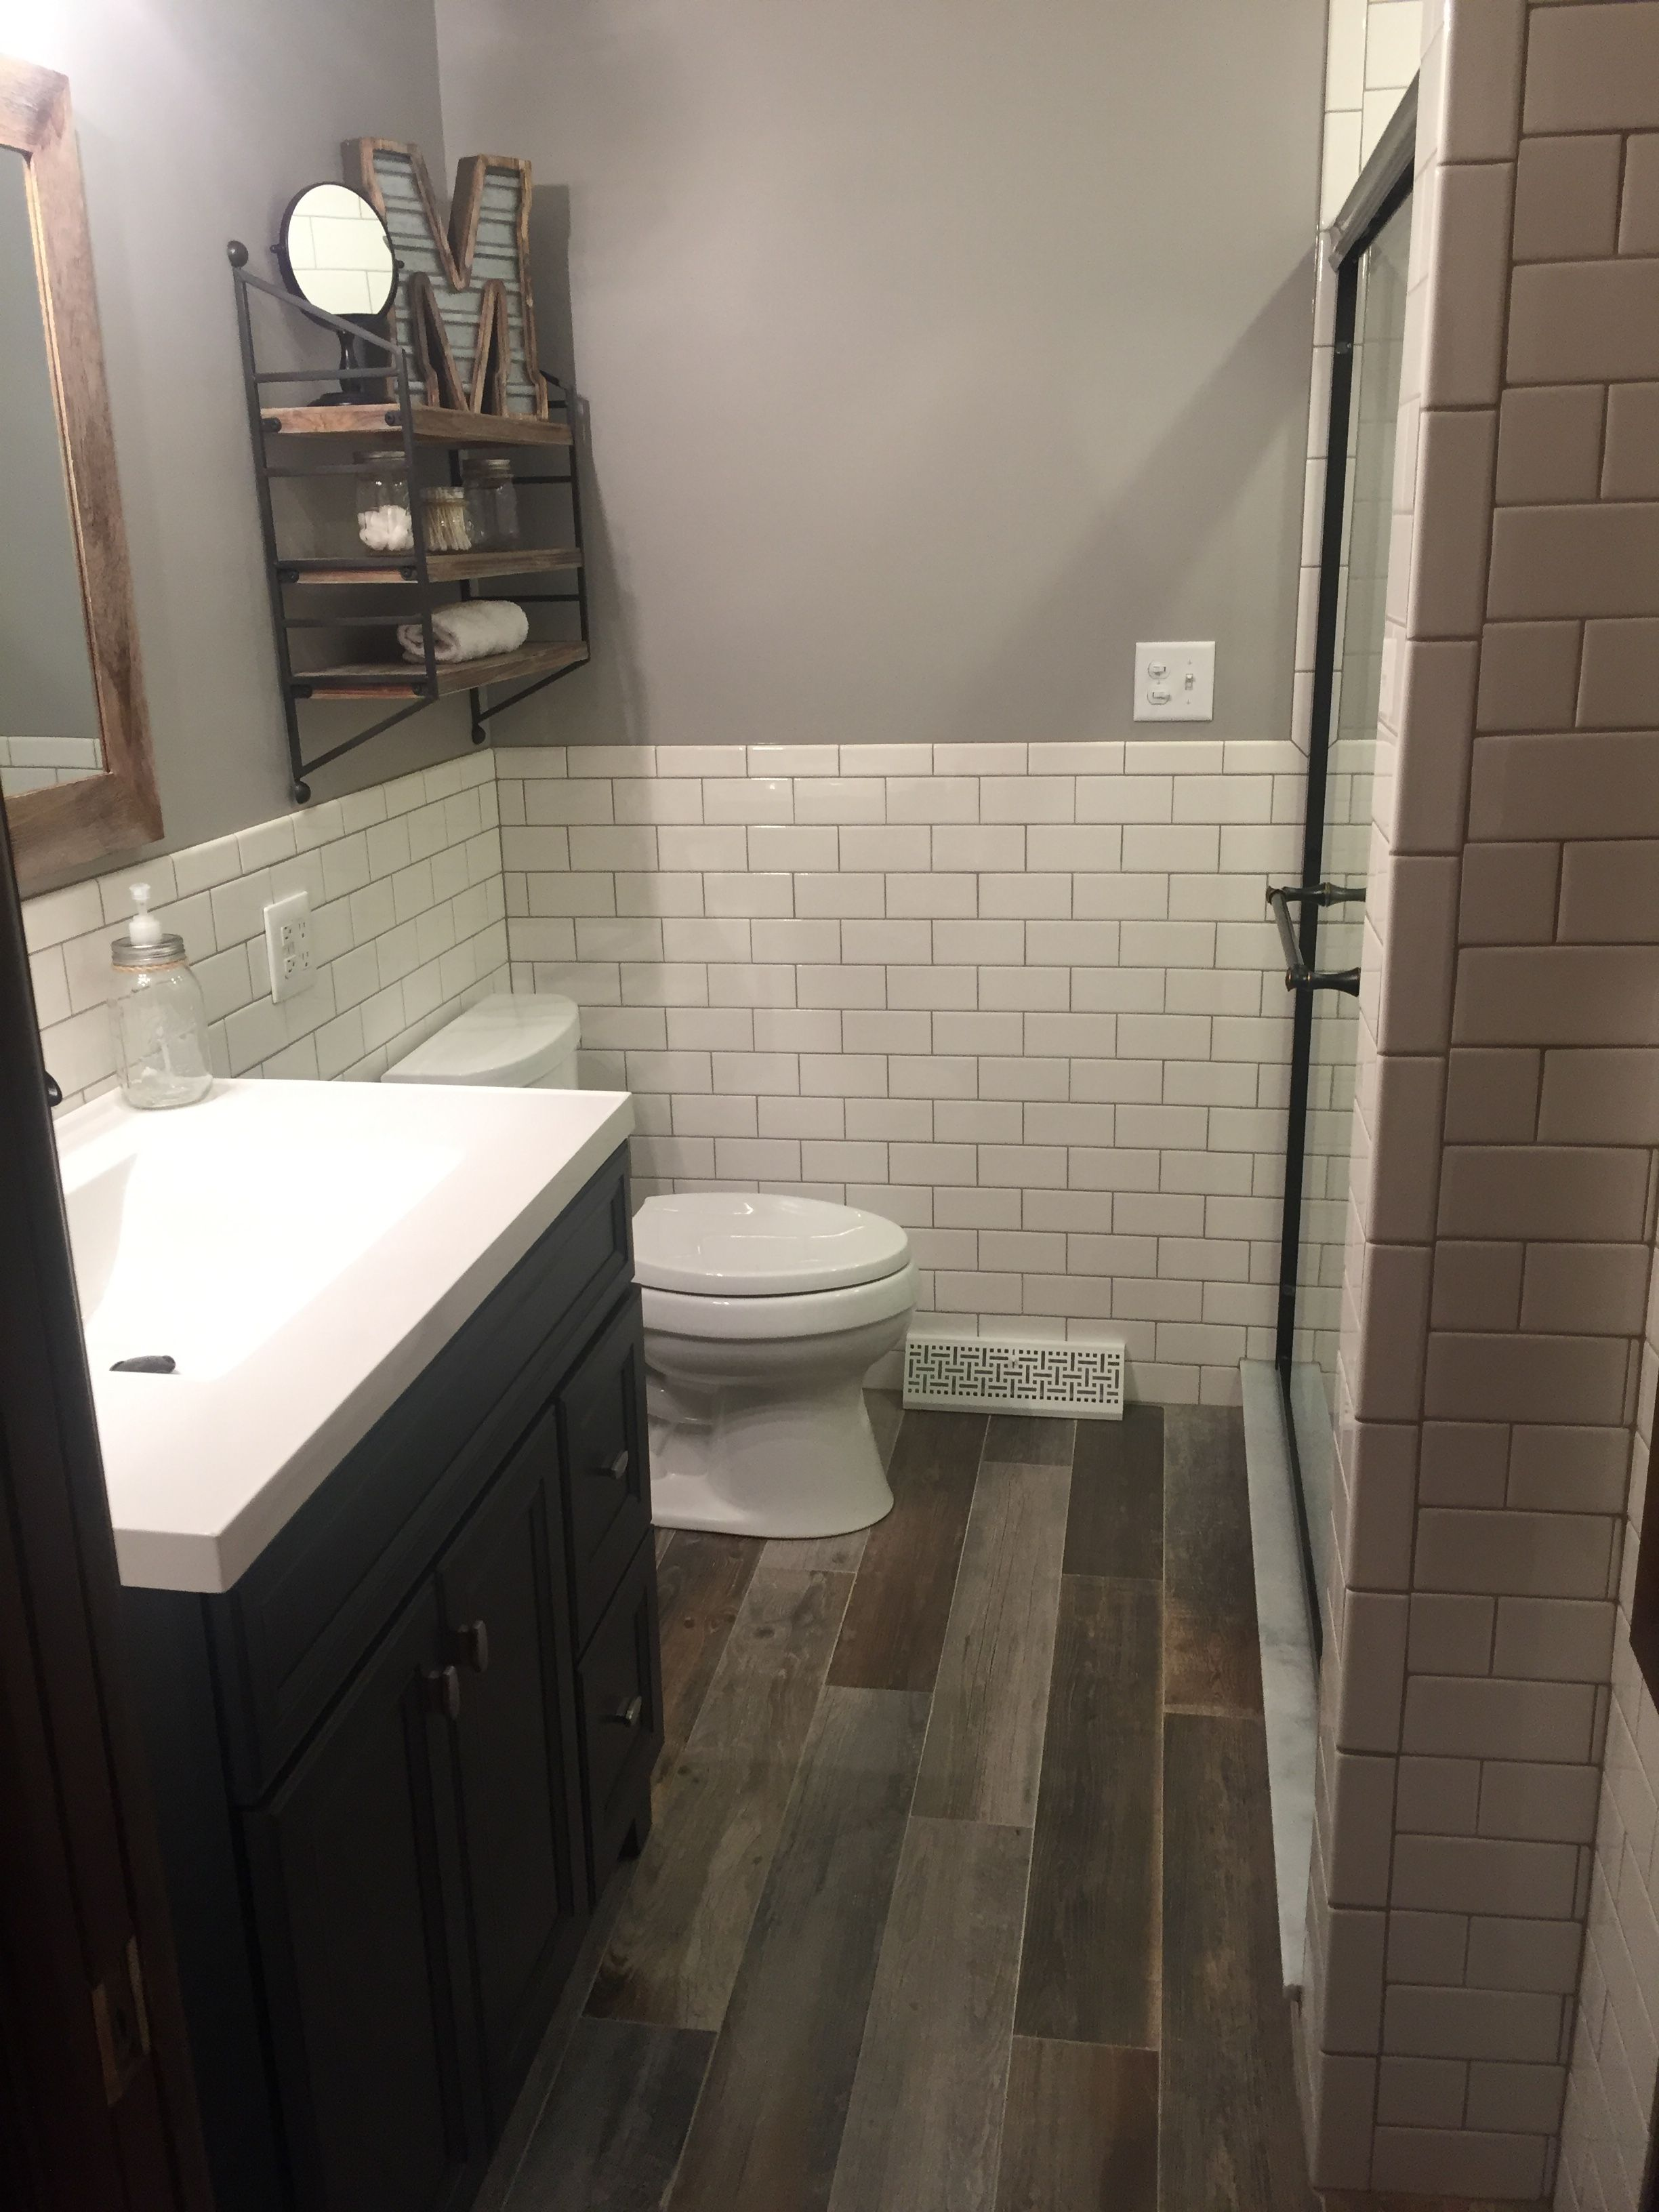 Basement Bathroom Ideas On Budget Low Ceiling And For Small Space Check It Out Wood